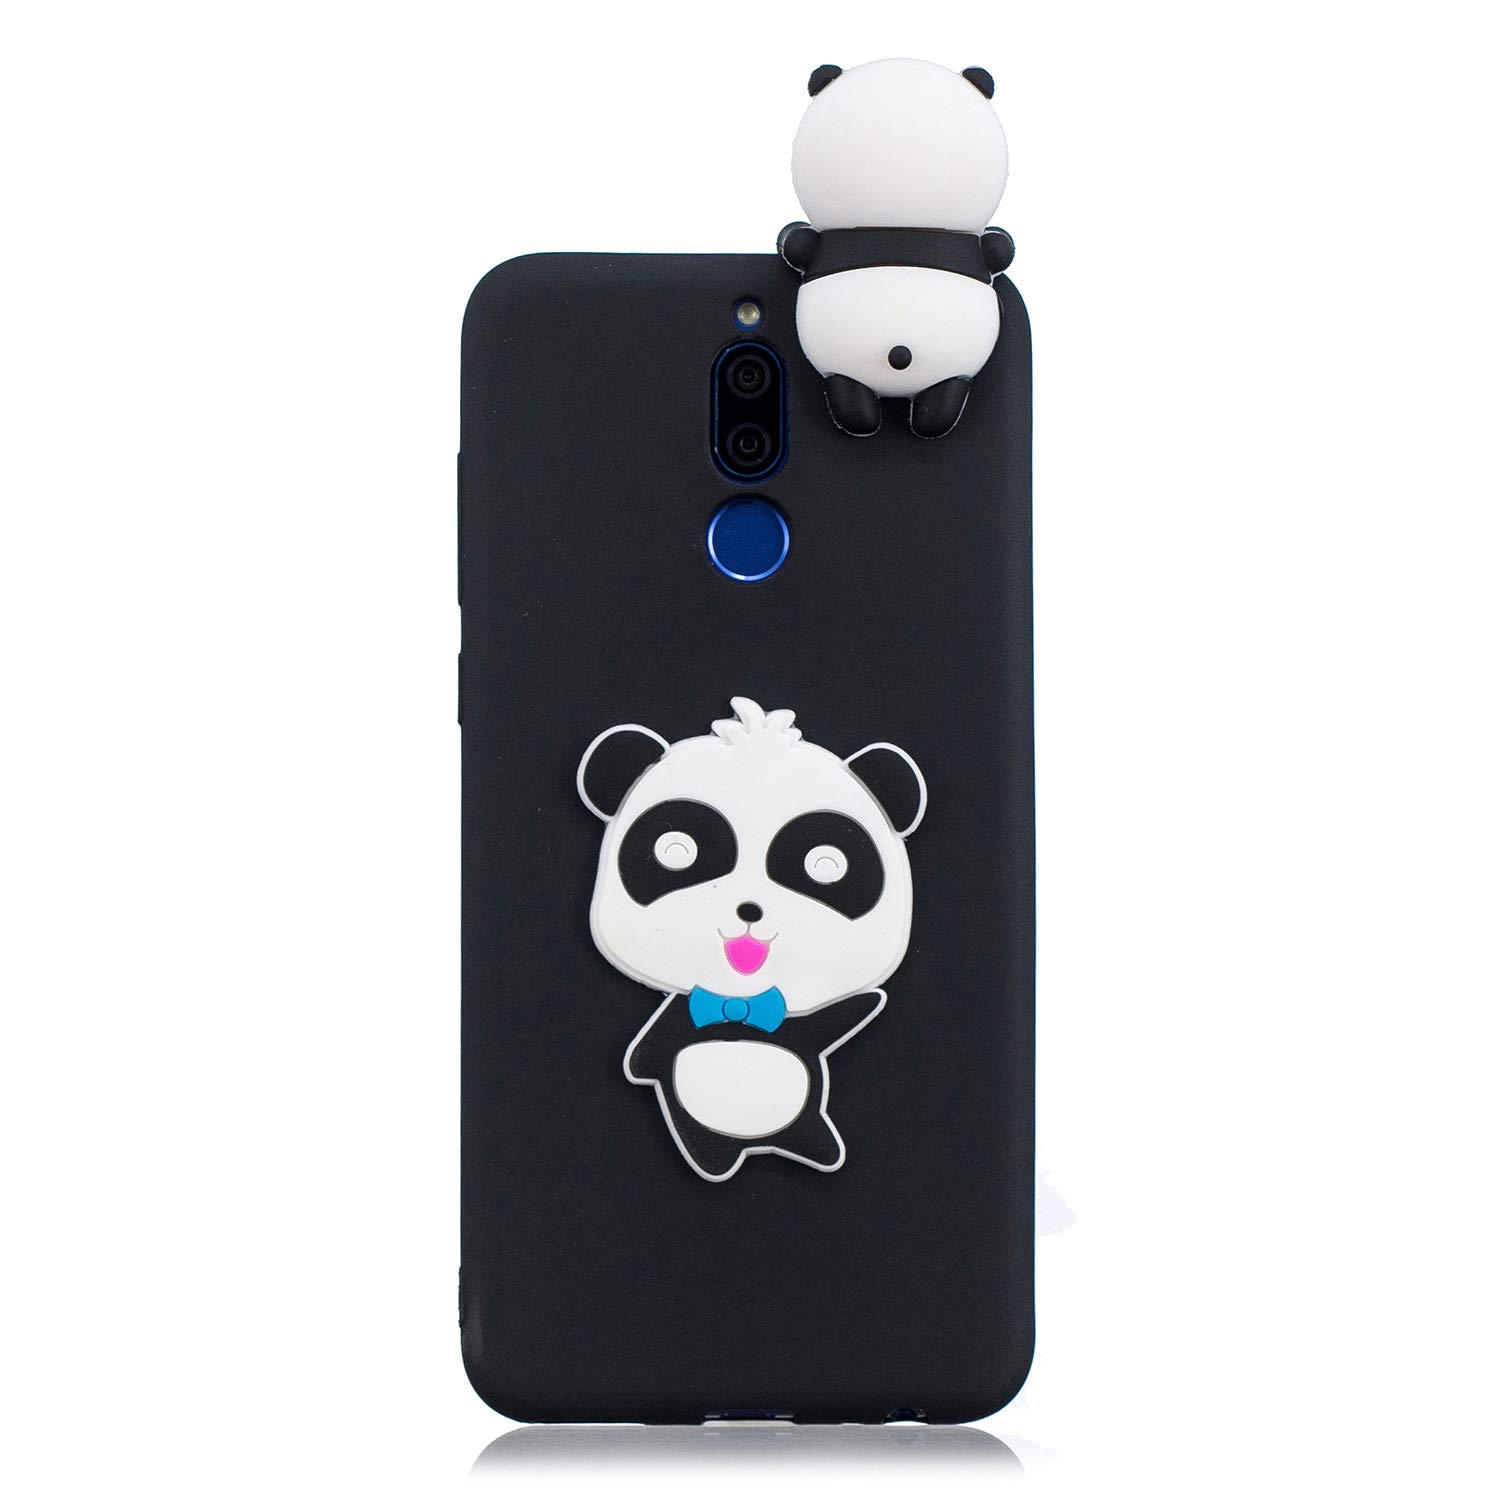 for Huawei Mate 10 Lite Silicone Case with Screen Protector,QFFUN 3D Cartoon [Panda] Pattern Design Soft Flexible Slim Fit Gel Rubber Cover,Shockproof Anti-Scratch Protective Case Bumper by QFFUN (Image #2)